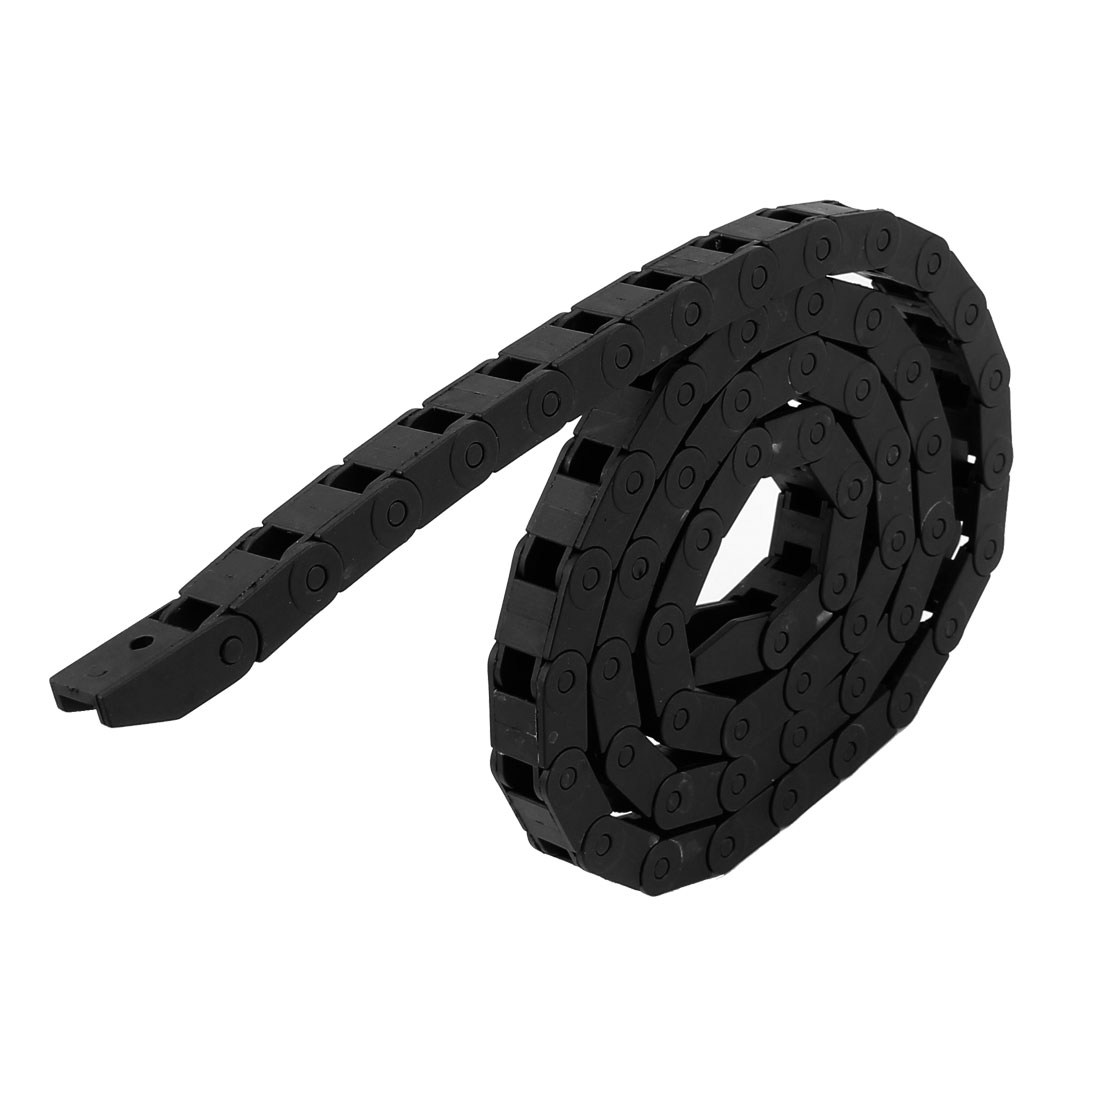 100cm R3cm Plastic Open Type Wire Carrier Cable Drag Chain 9mmx7mm